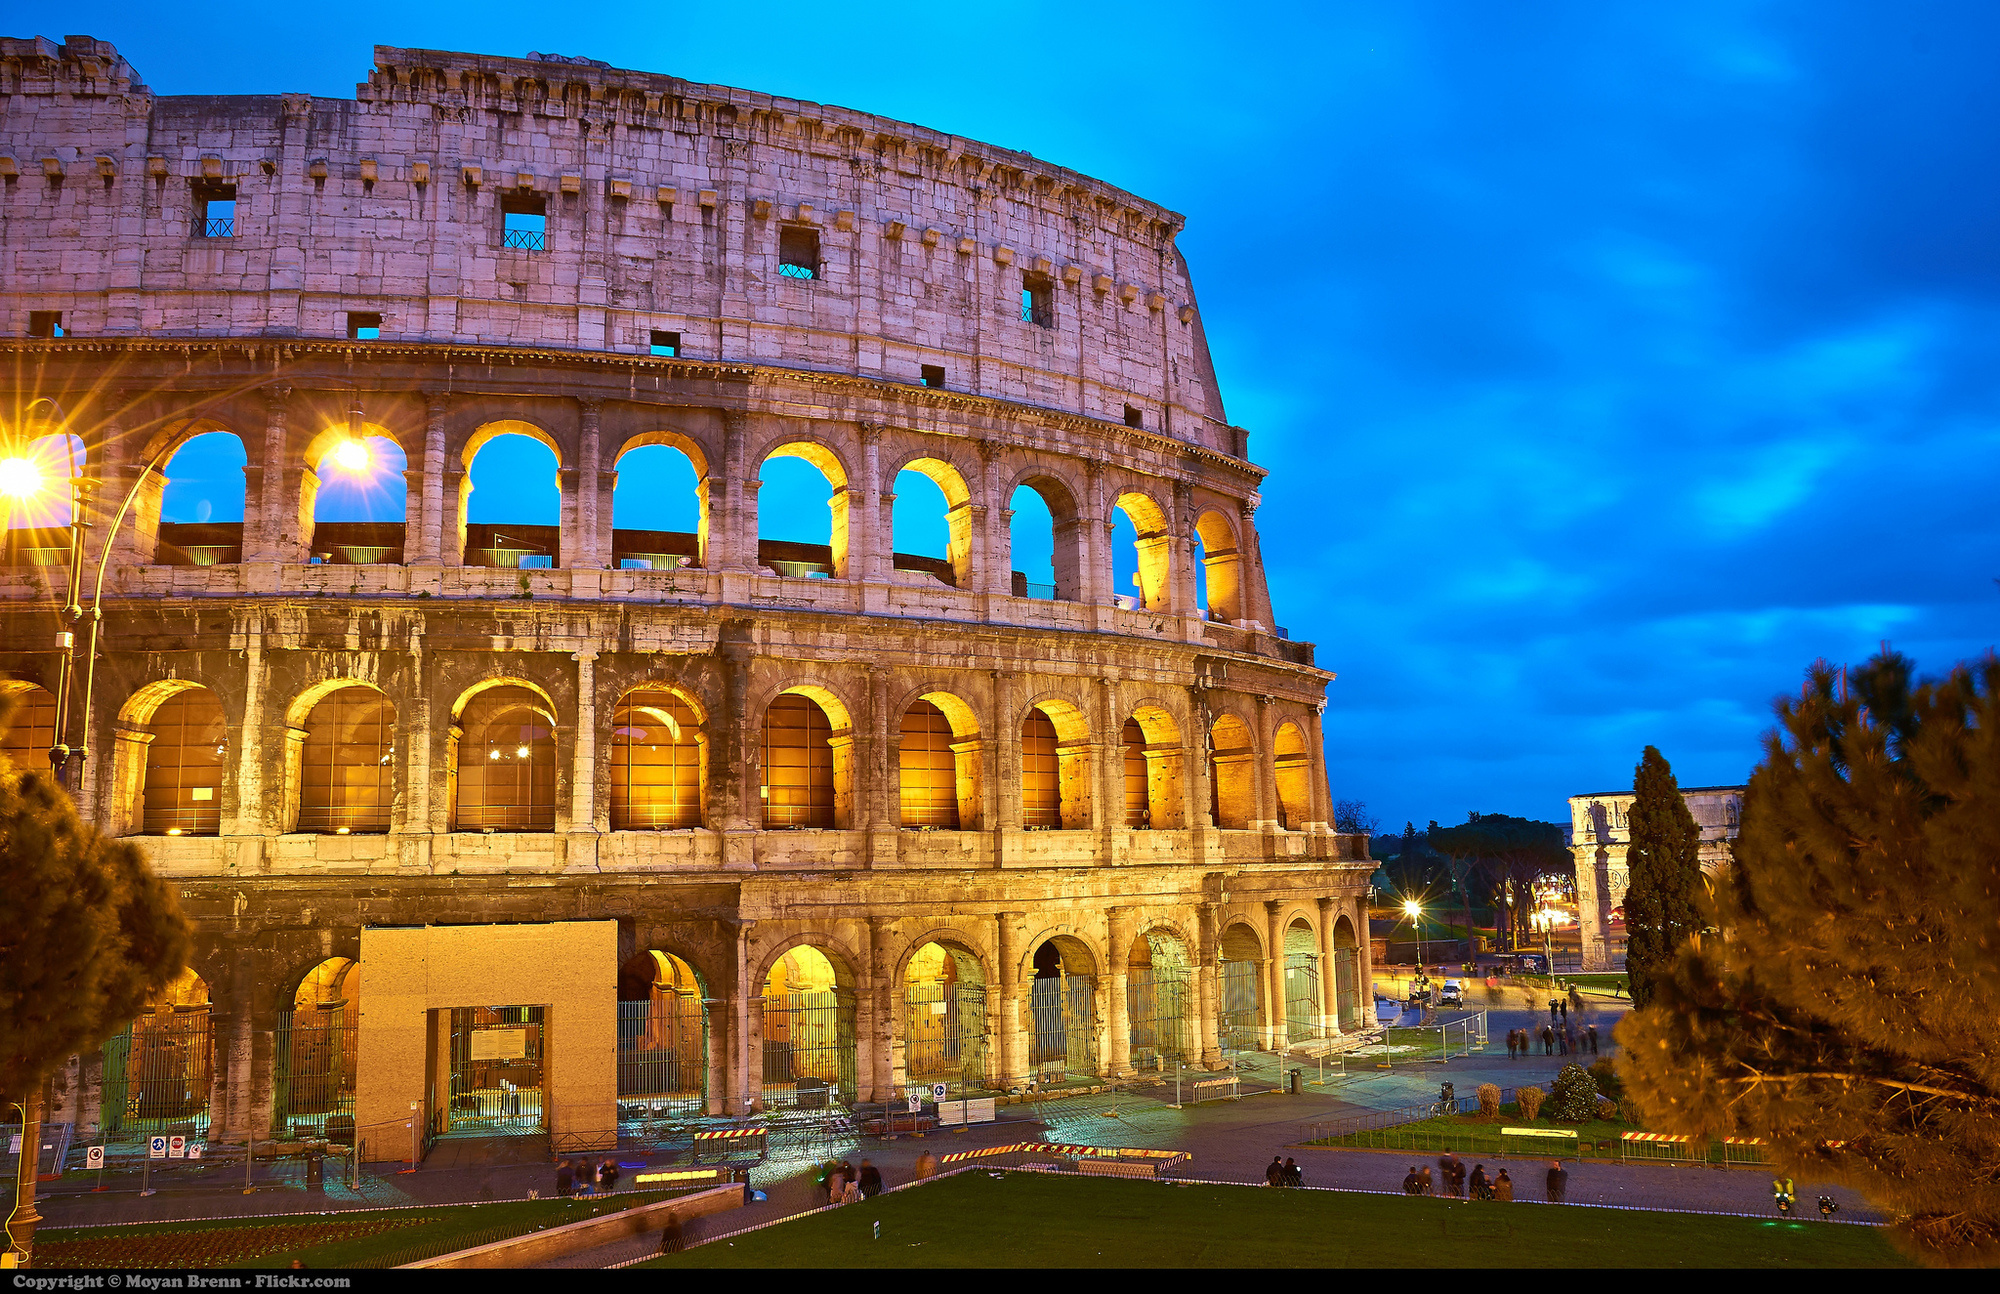 There is a city called Rome on every continent.